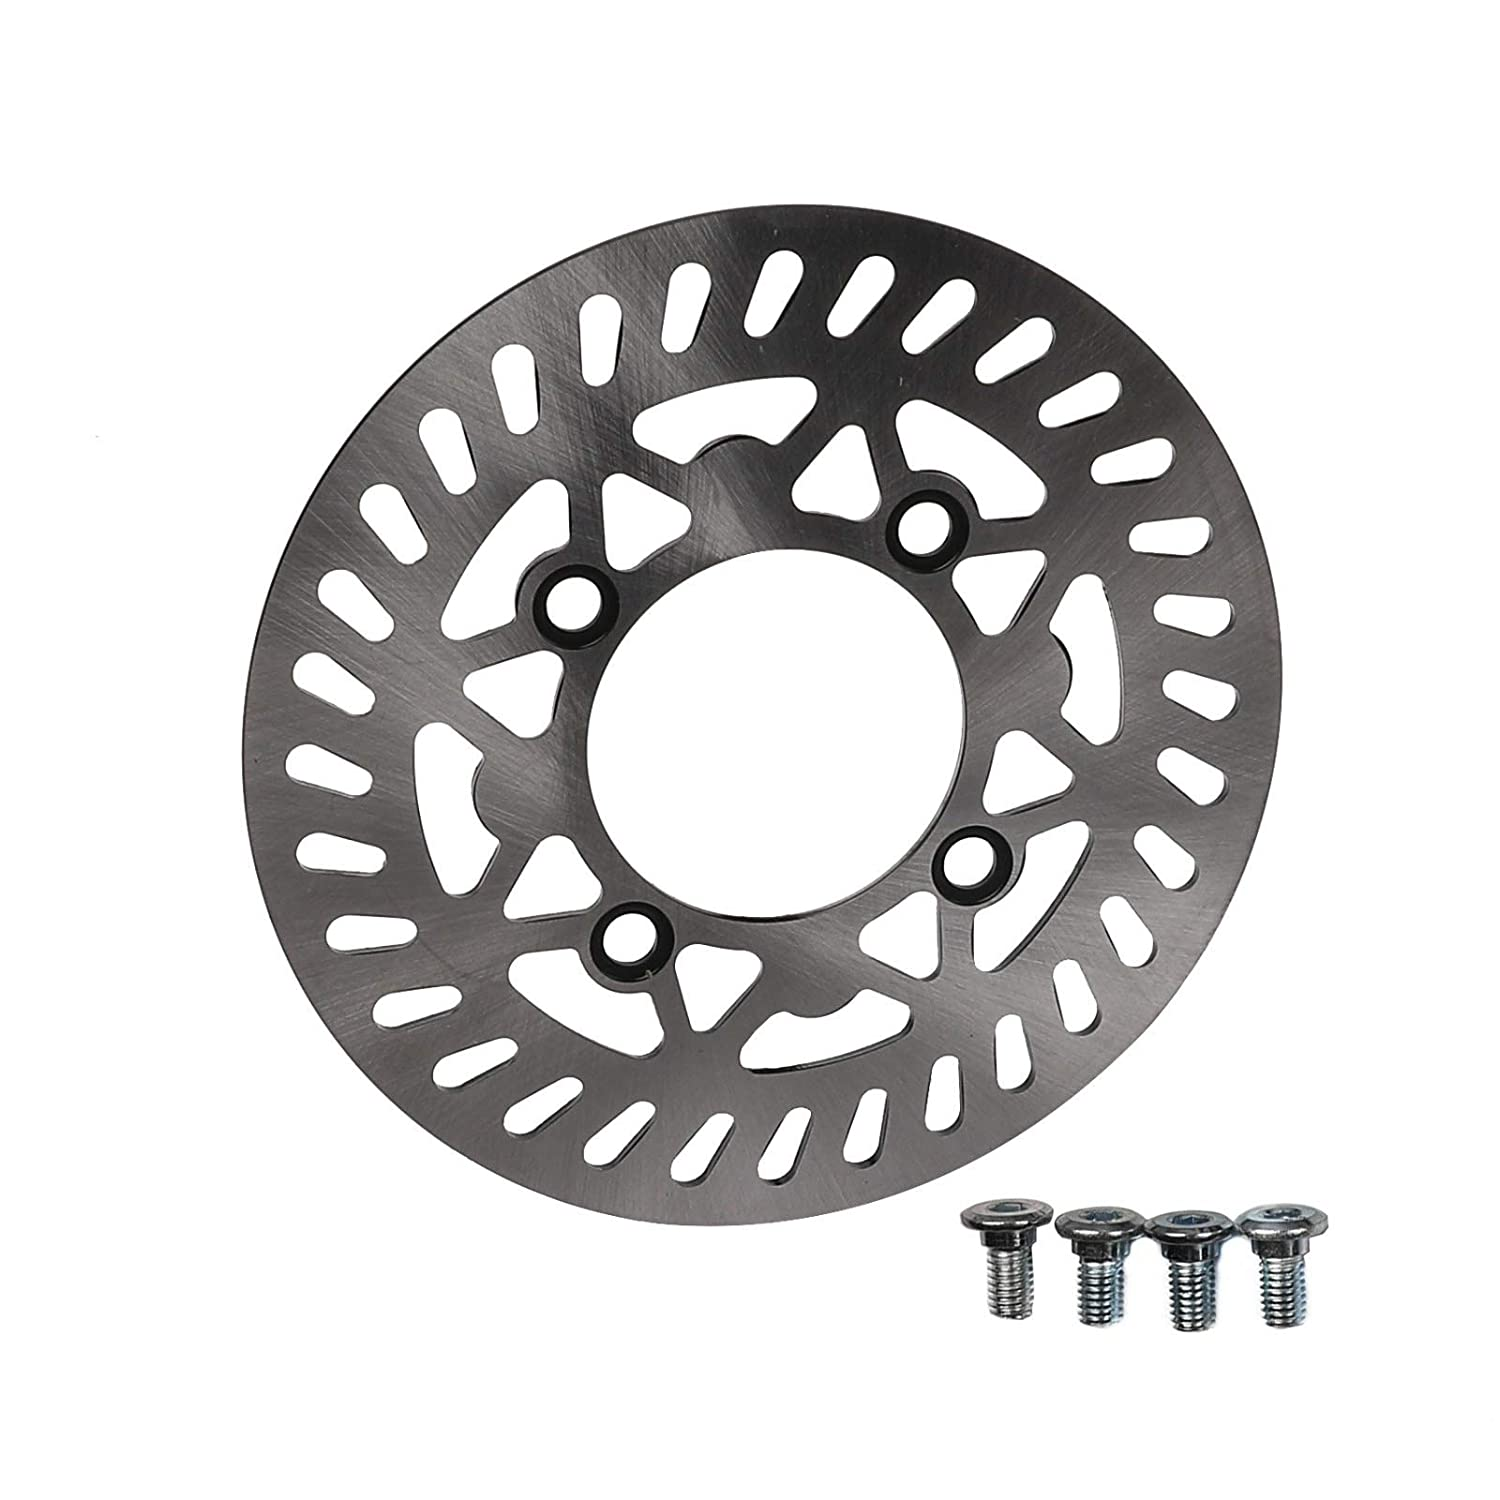 ZXTDR 70//100-17 Wheel Tire and Rim Inner Tube With 15mm Bearing /& 210mm Front Brake Disc Rotor for Dirt Pit Trail Bike